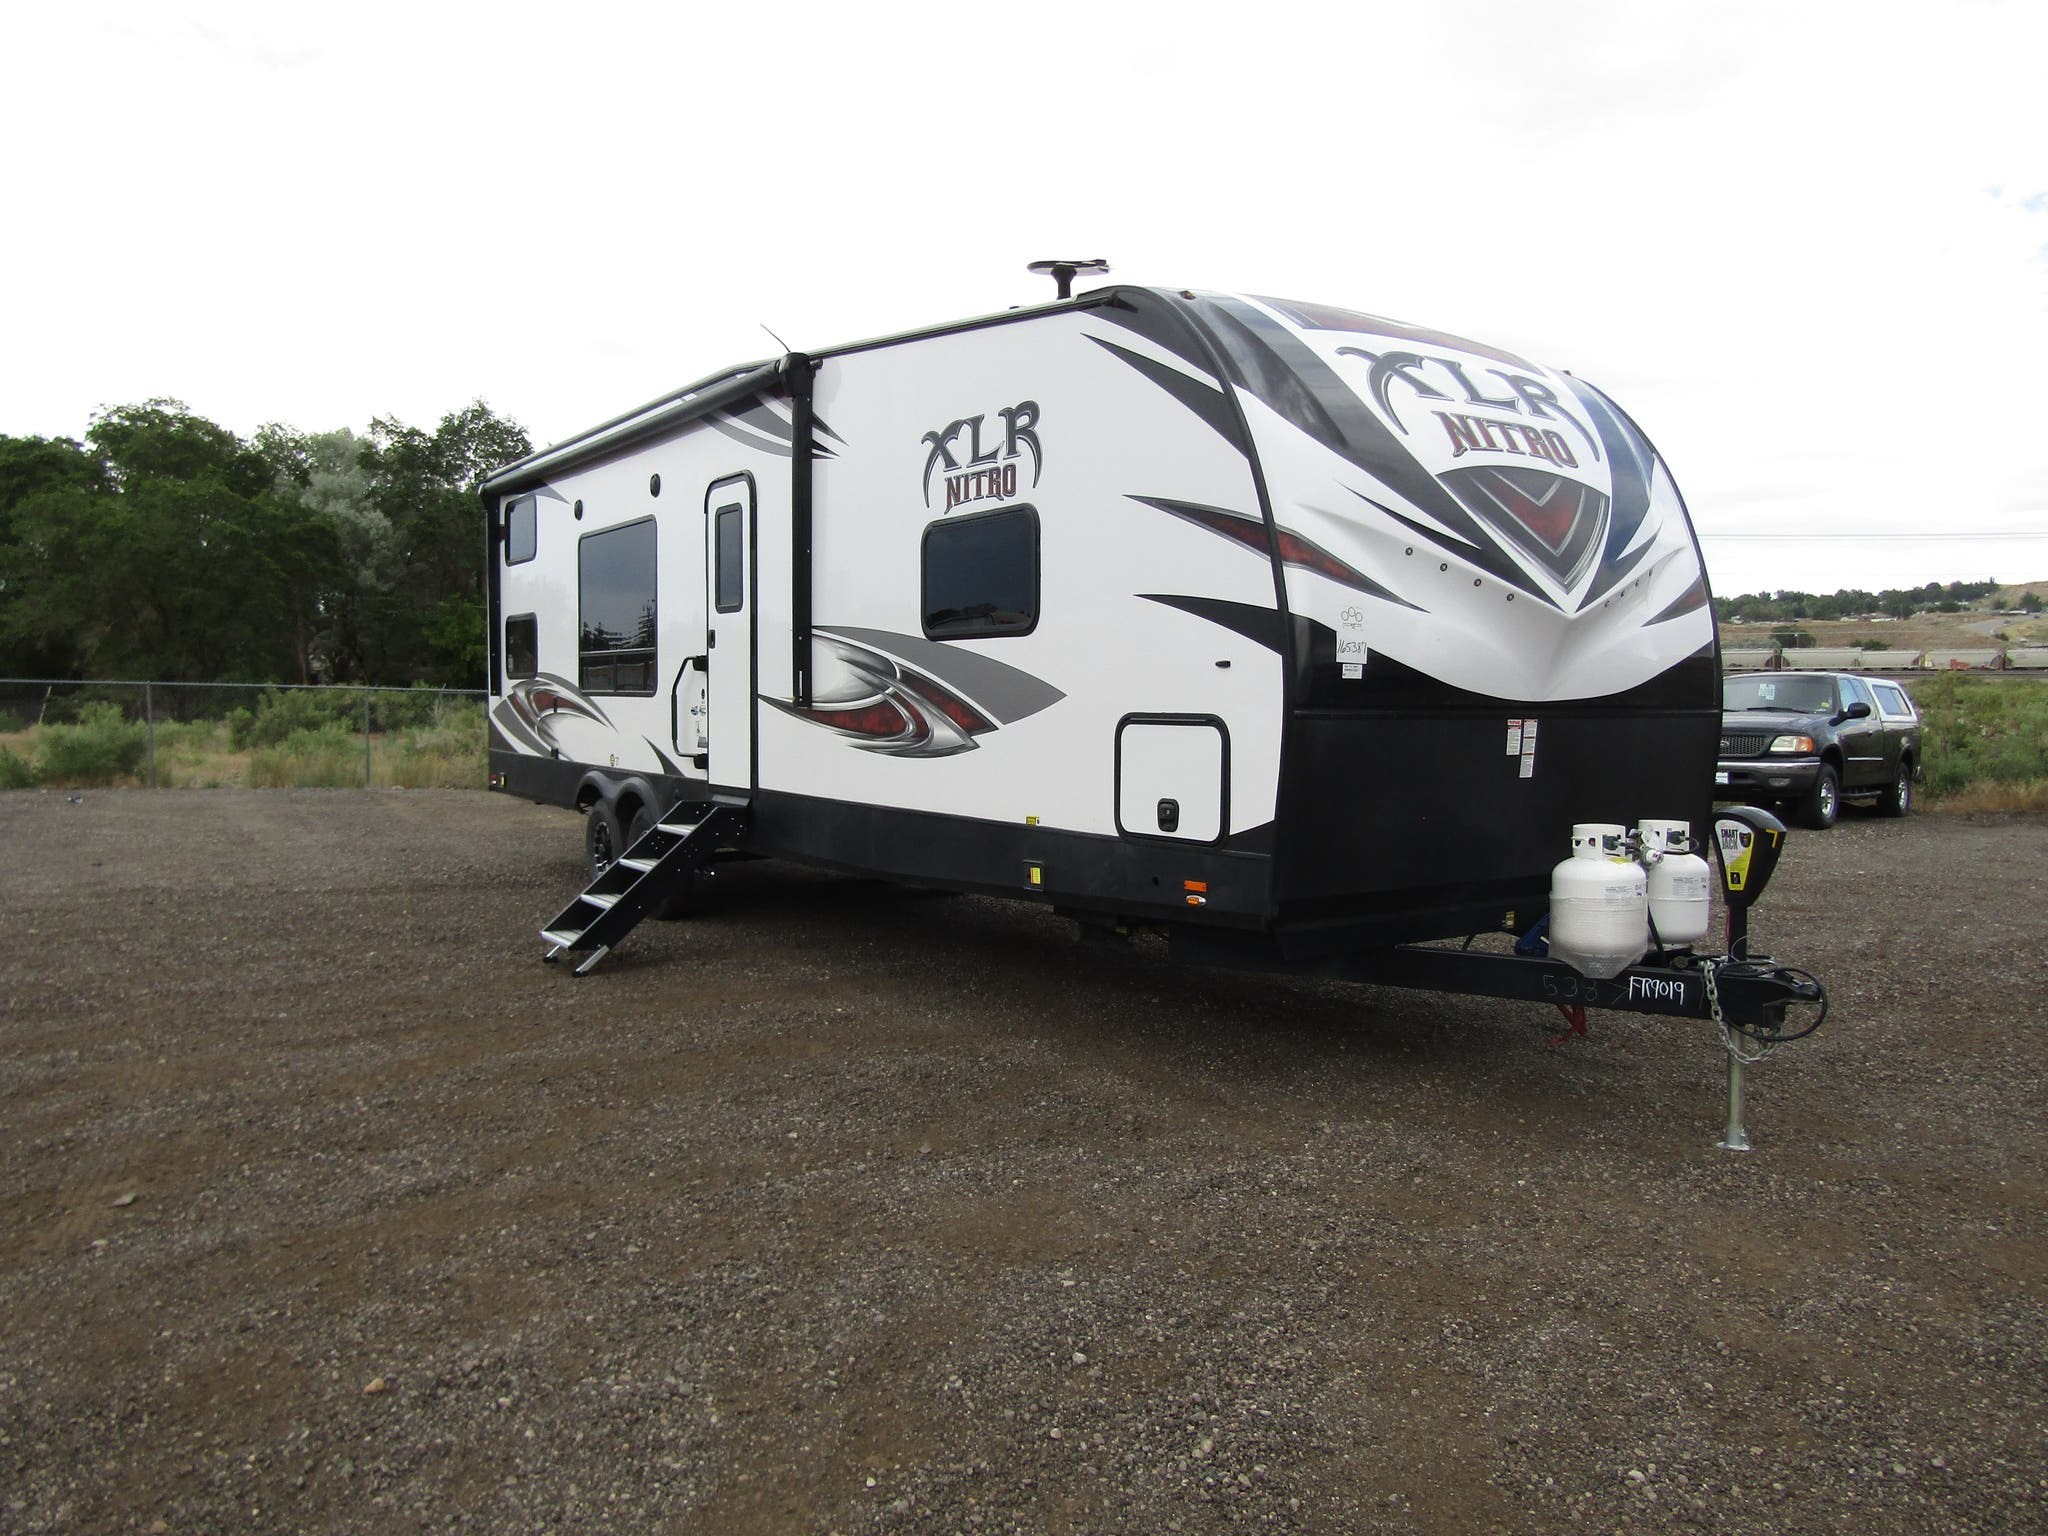 2019 Forest River Rv Xlr Nitro 28kw For Sale In Rock Springs Wy Wiring Diagram Ntro Previous